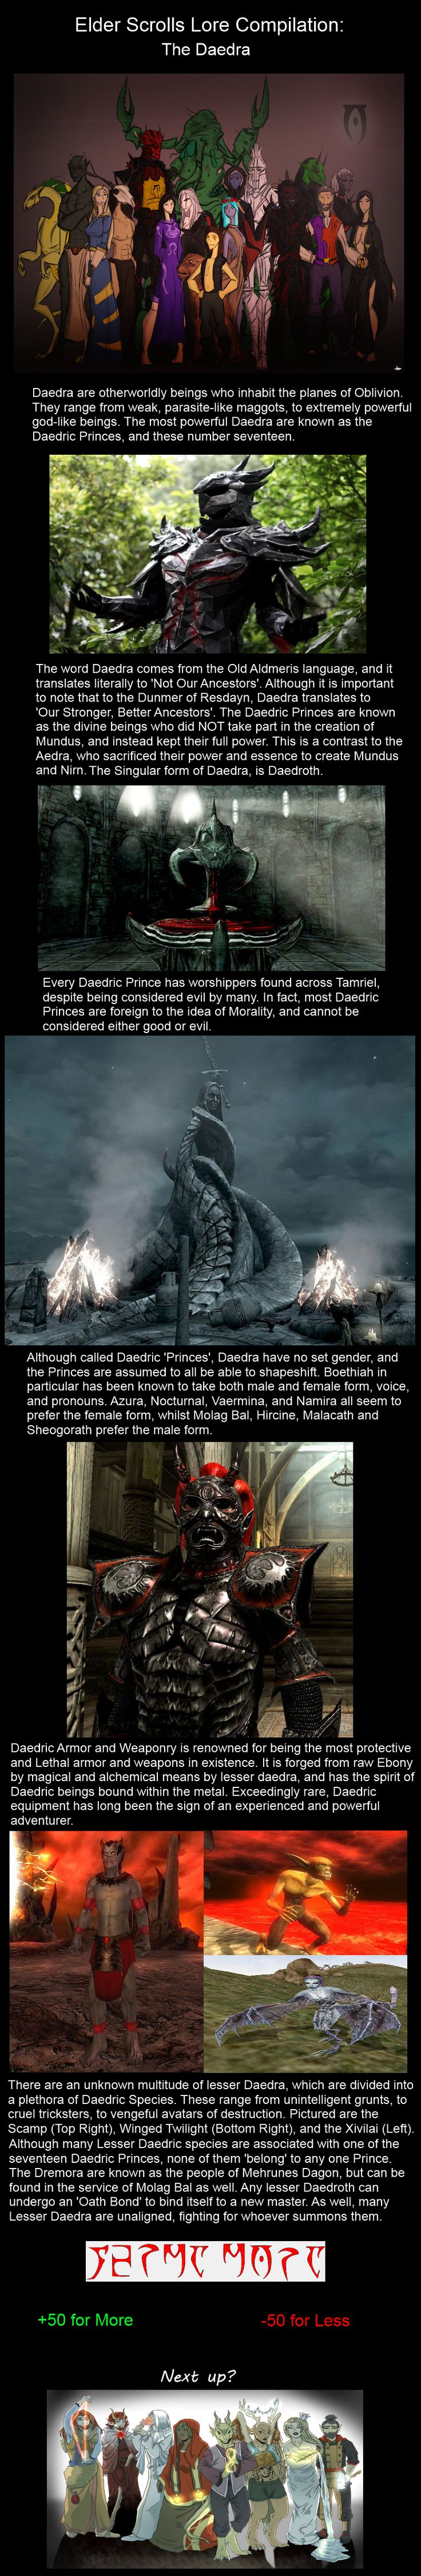 Elder Scrolls Lore 1: The Daedra  // funny pictures - funny photos - funny images - funny pics - funny quotes - #lol #humor #funnypictures